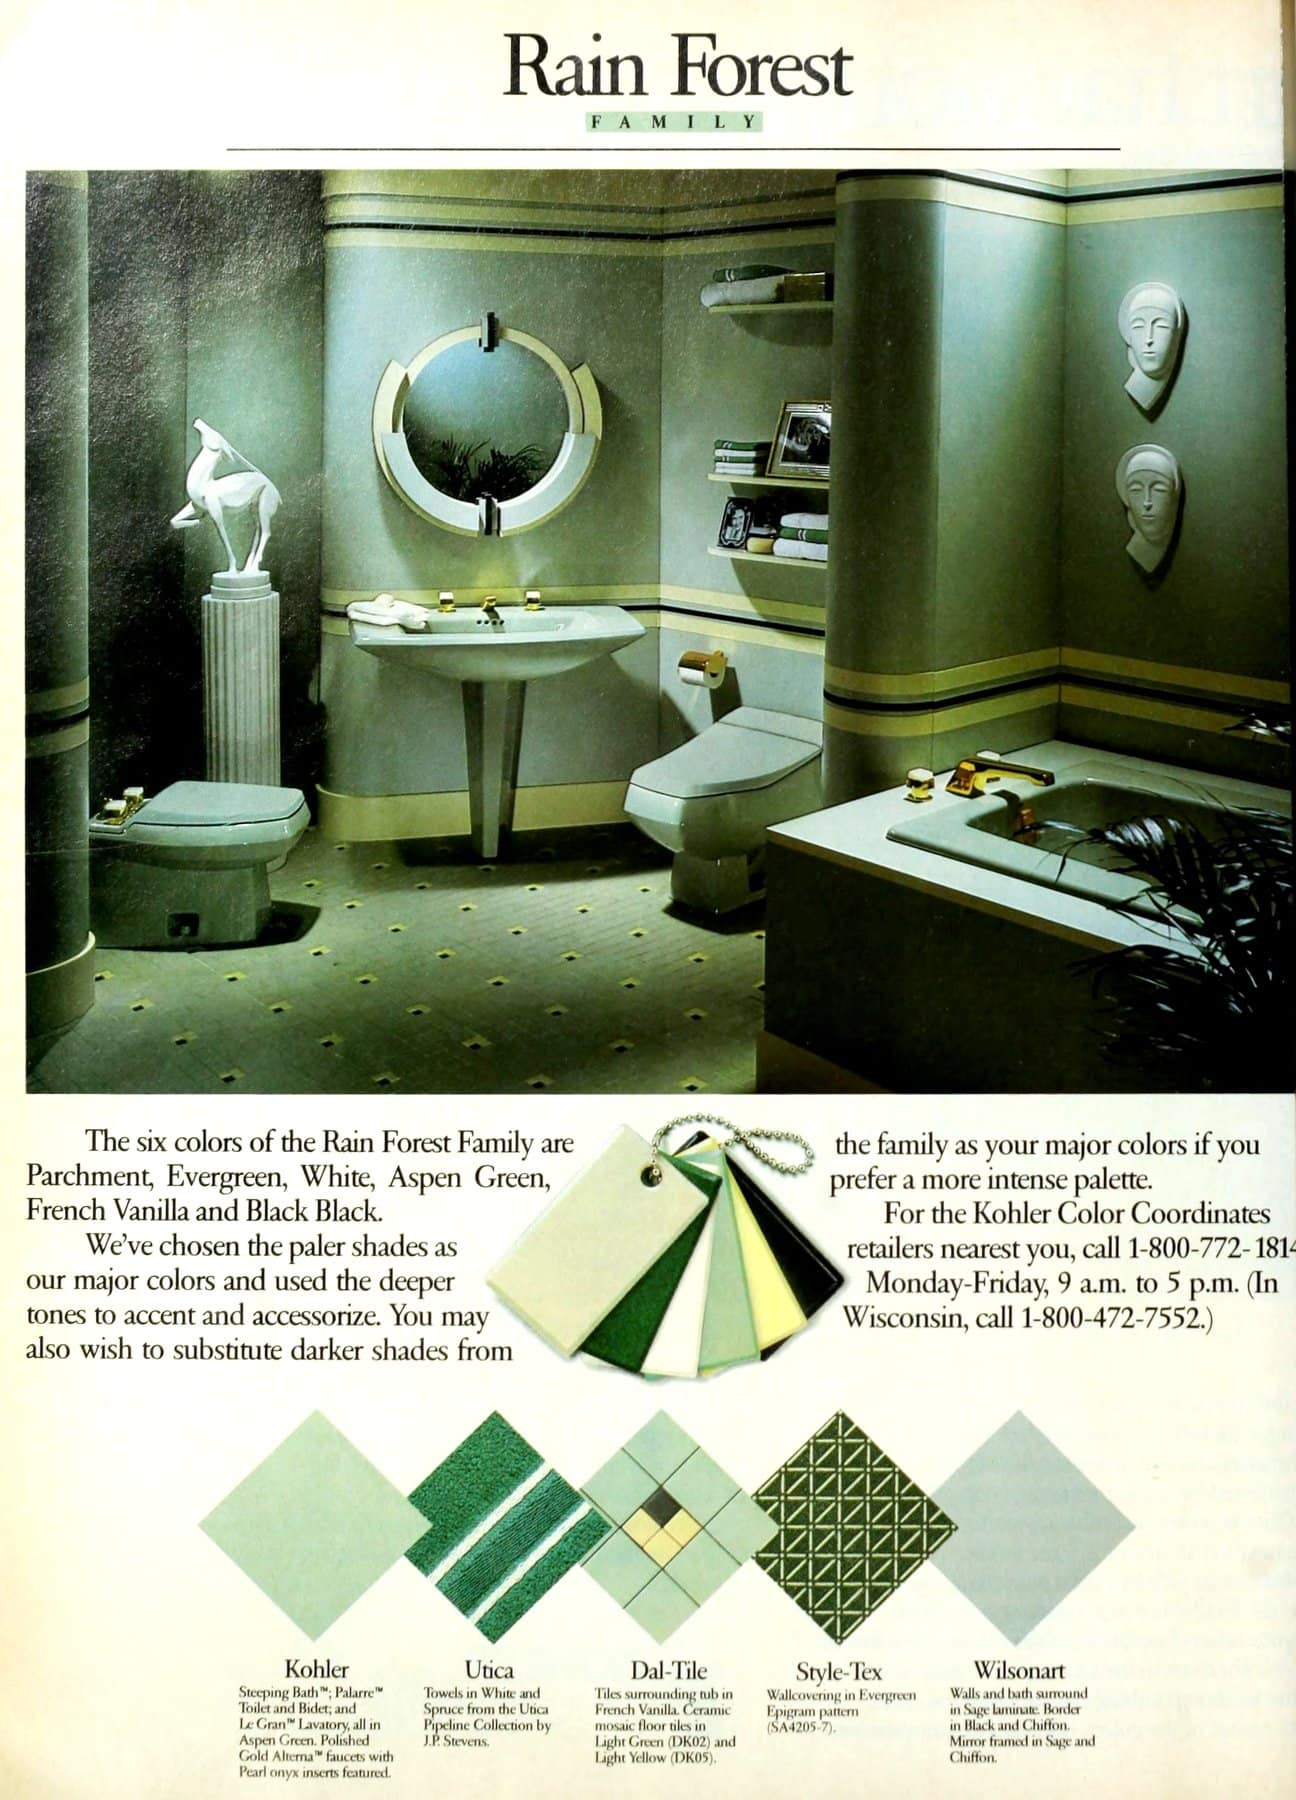 Rain Forest family color bathroom decor scheme (1986)